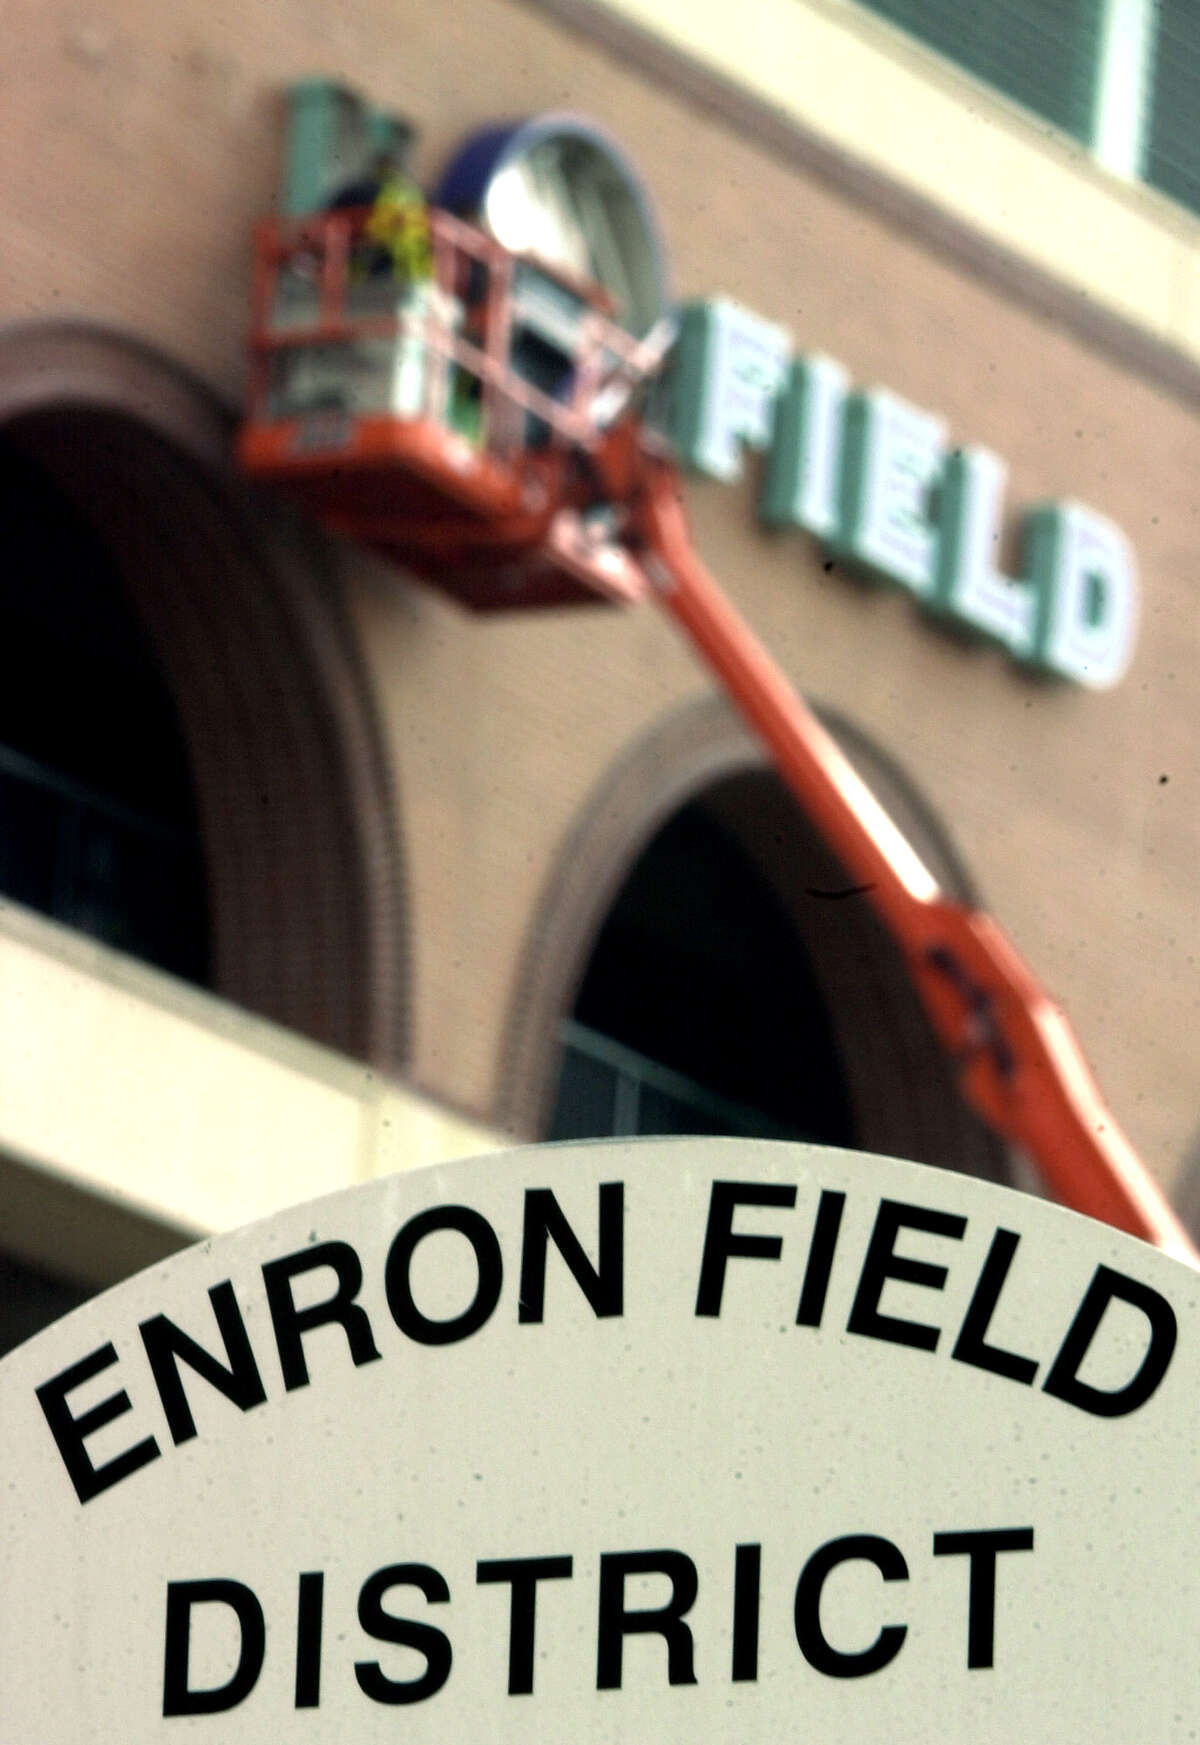 MLB: Minute Maid Park, Houston The ballpark was called Enron Field when it opened in 2000, but after the energy company's collapse, the Astros bought back the naming rights in early 2002 and gave it the generic